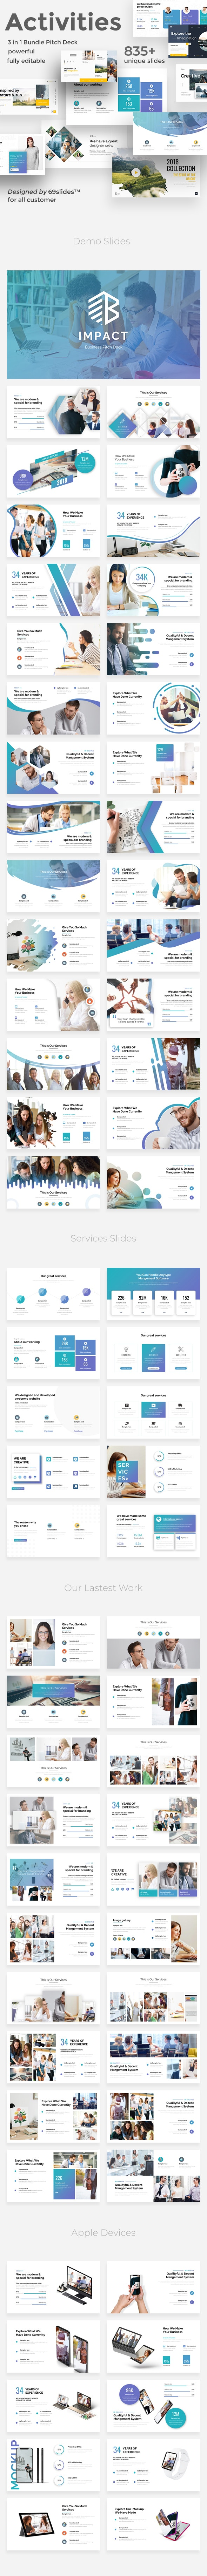 Key Activities 3 in 1 Pitch Deck Bundle Powerpoint Template - Creative PowerPoint Templates